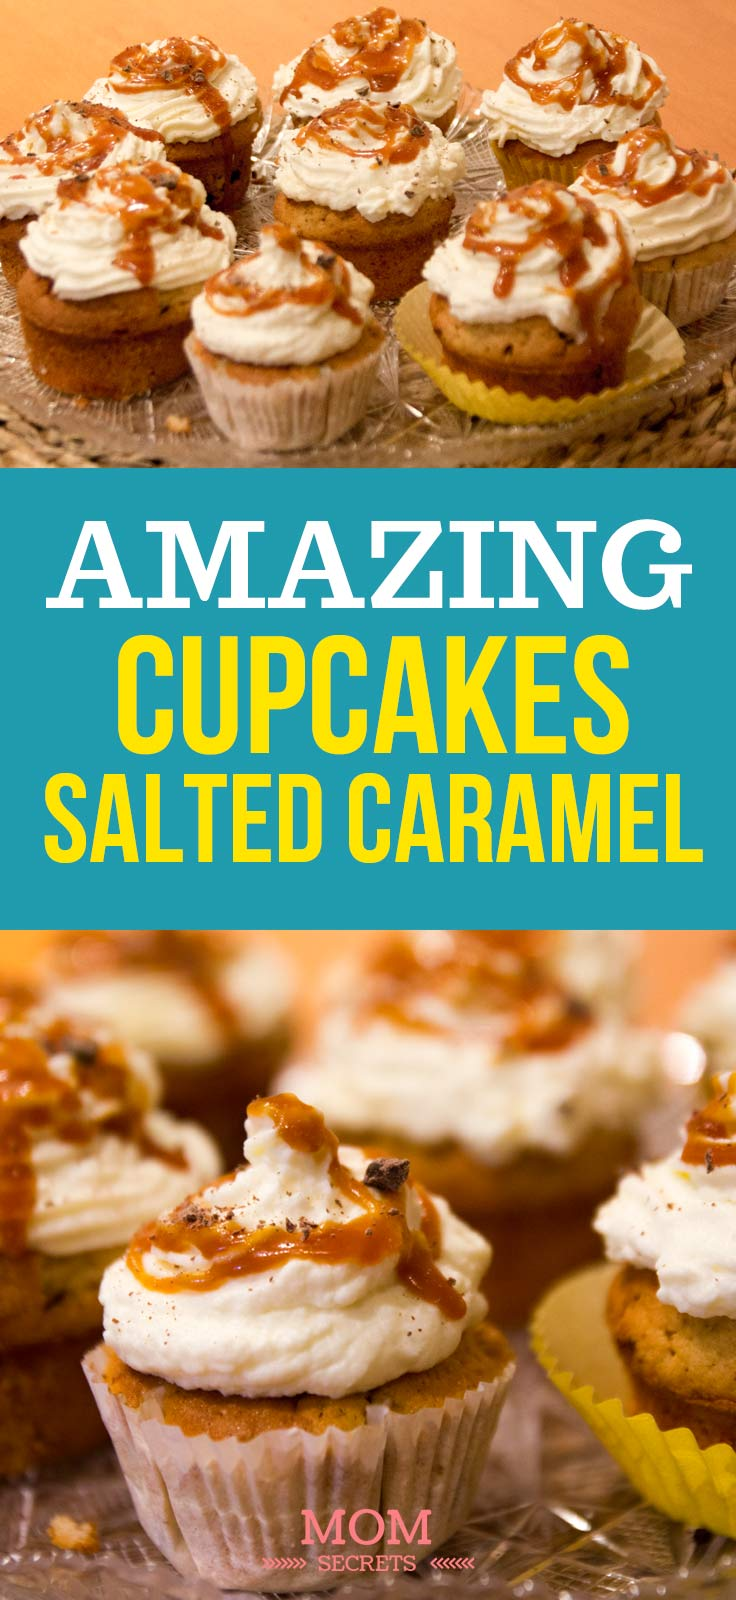 Try this amazing Banana Vanilla Cupcakes Recipe with Salted Caramel - my kids just love it! The preparation time is just 30 min and the recipe is very inexpensive - you have all the ingredients at home, you can even use overripe bananas!